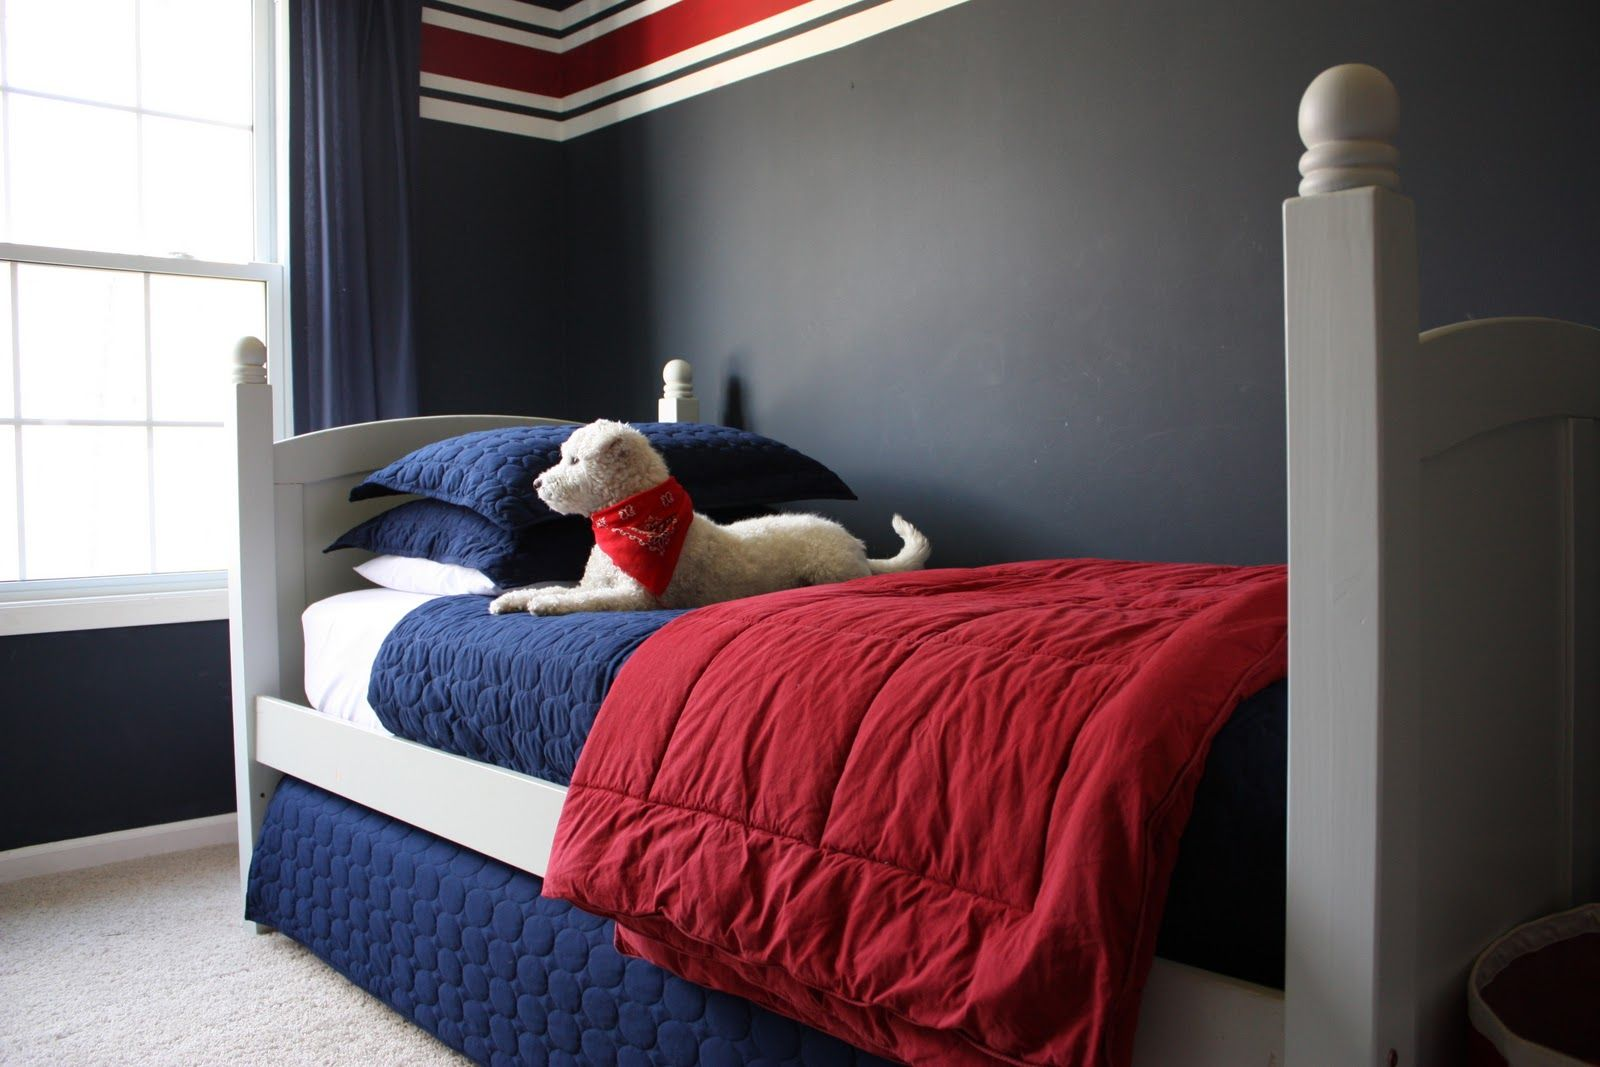 Bedroom colors blue and red - Cape Cod